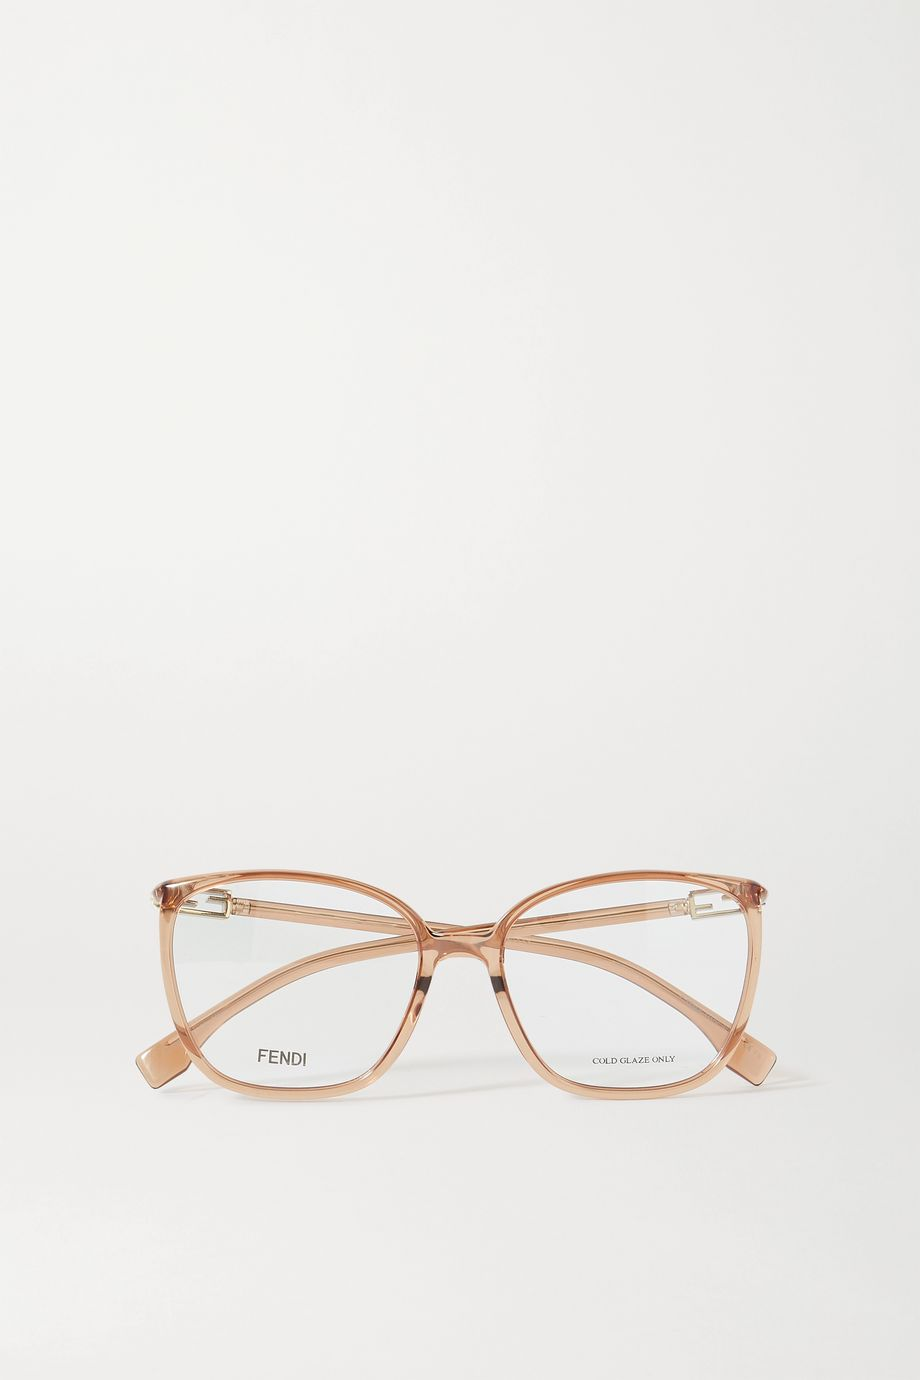 Fendi Square-frame acetate optical glasses